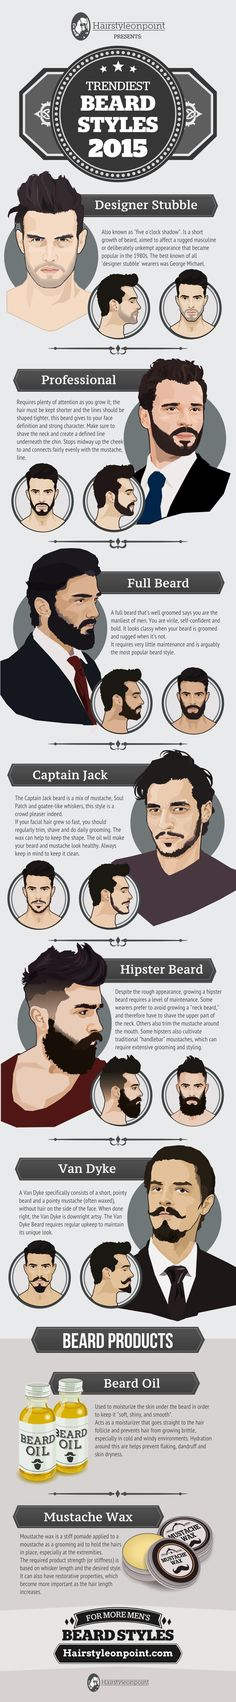 Cool chart detailing the latest trends in beards, along with some products to maintain the look. #BodyToolz #FathersDay